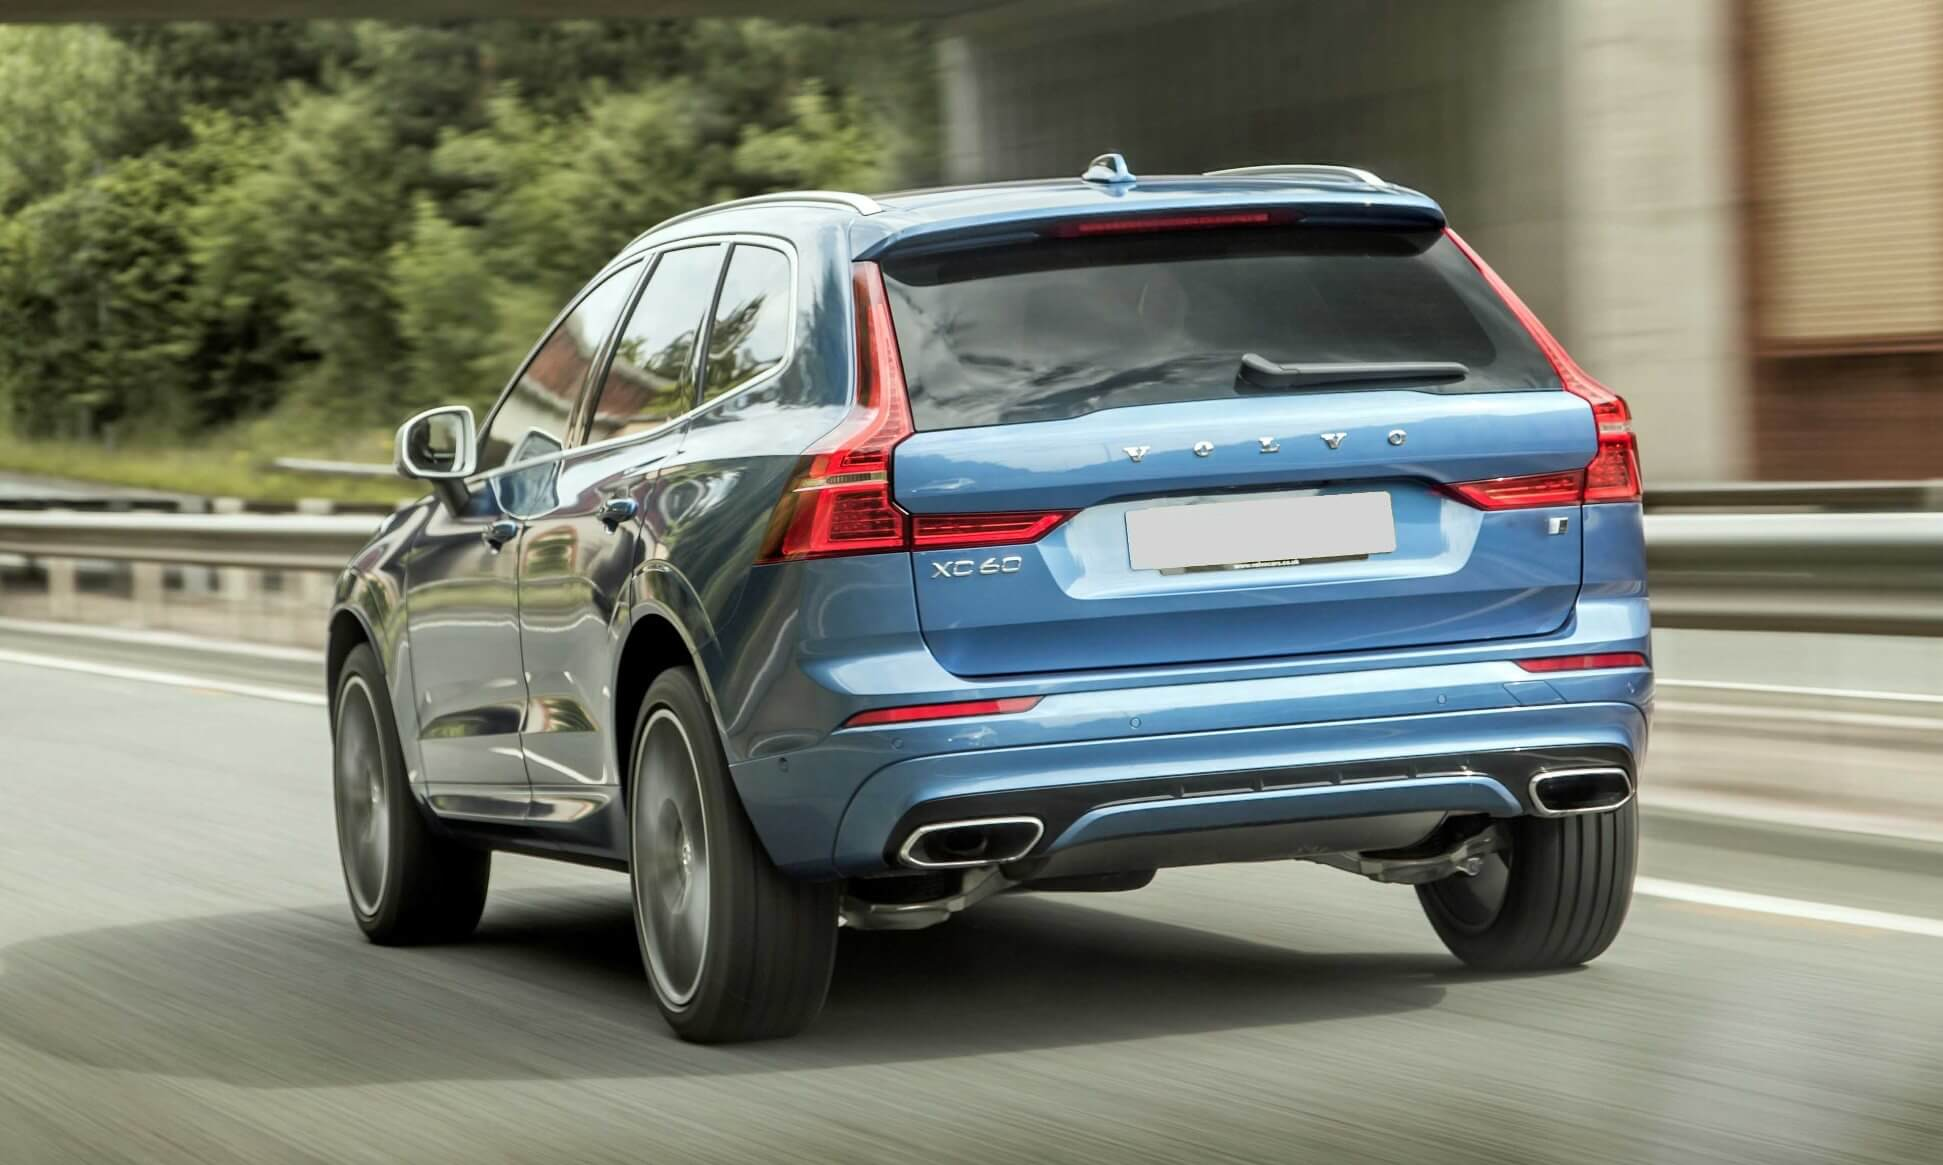 Volvo XC60 T6 R-Design rear